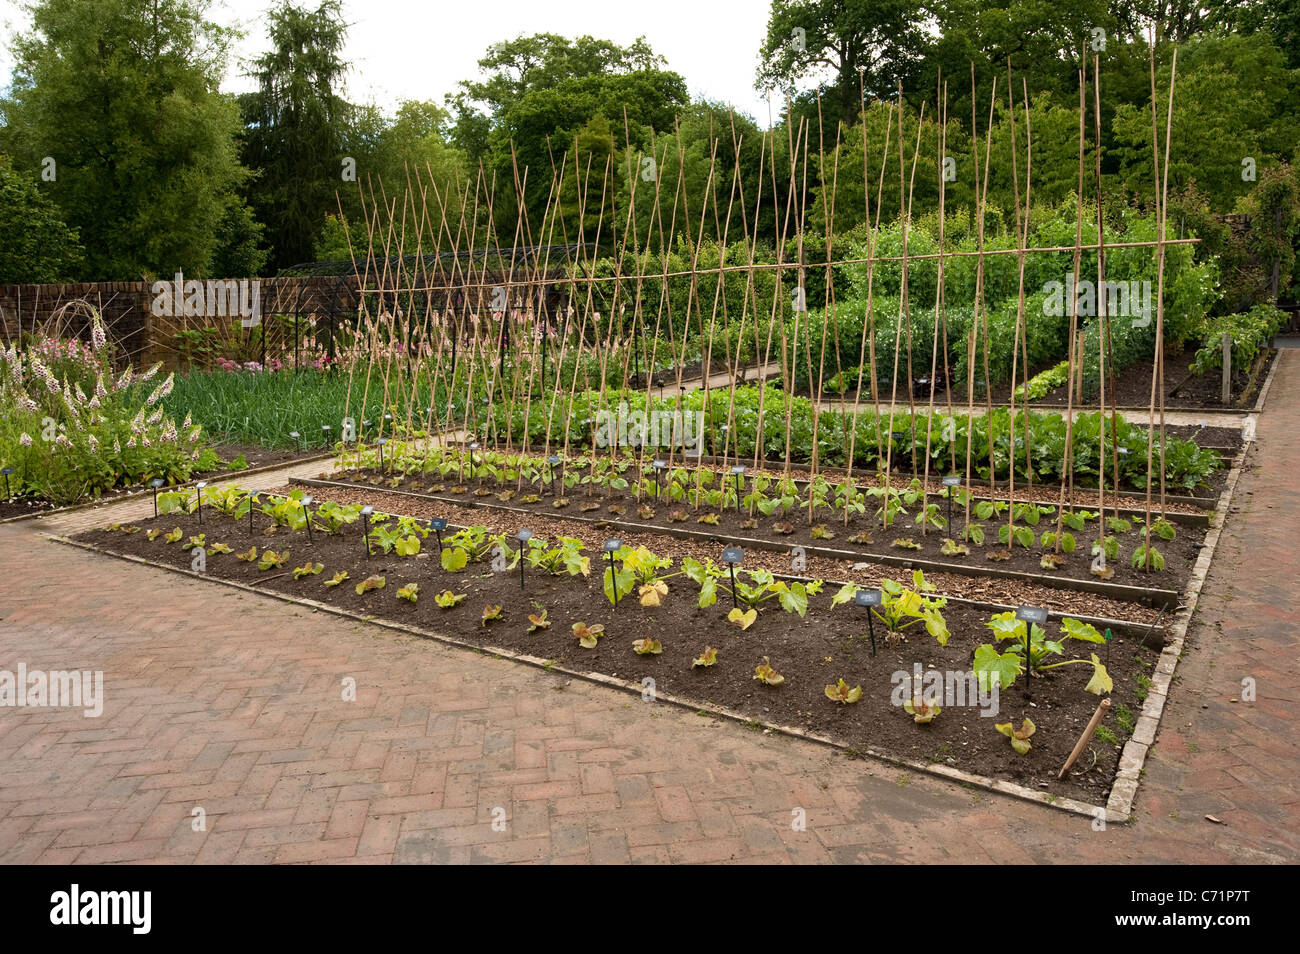 Superieur The Fruit And Vegetable Garden In June, RHS Rosemoor, England, United  Kingdom